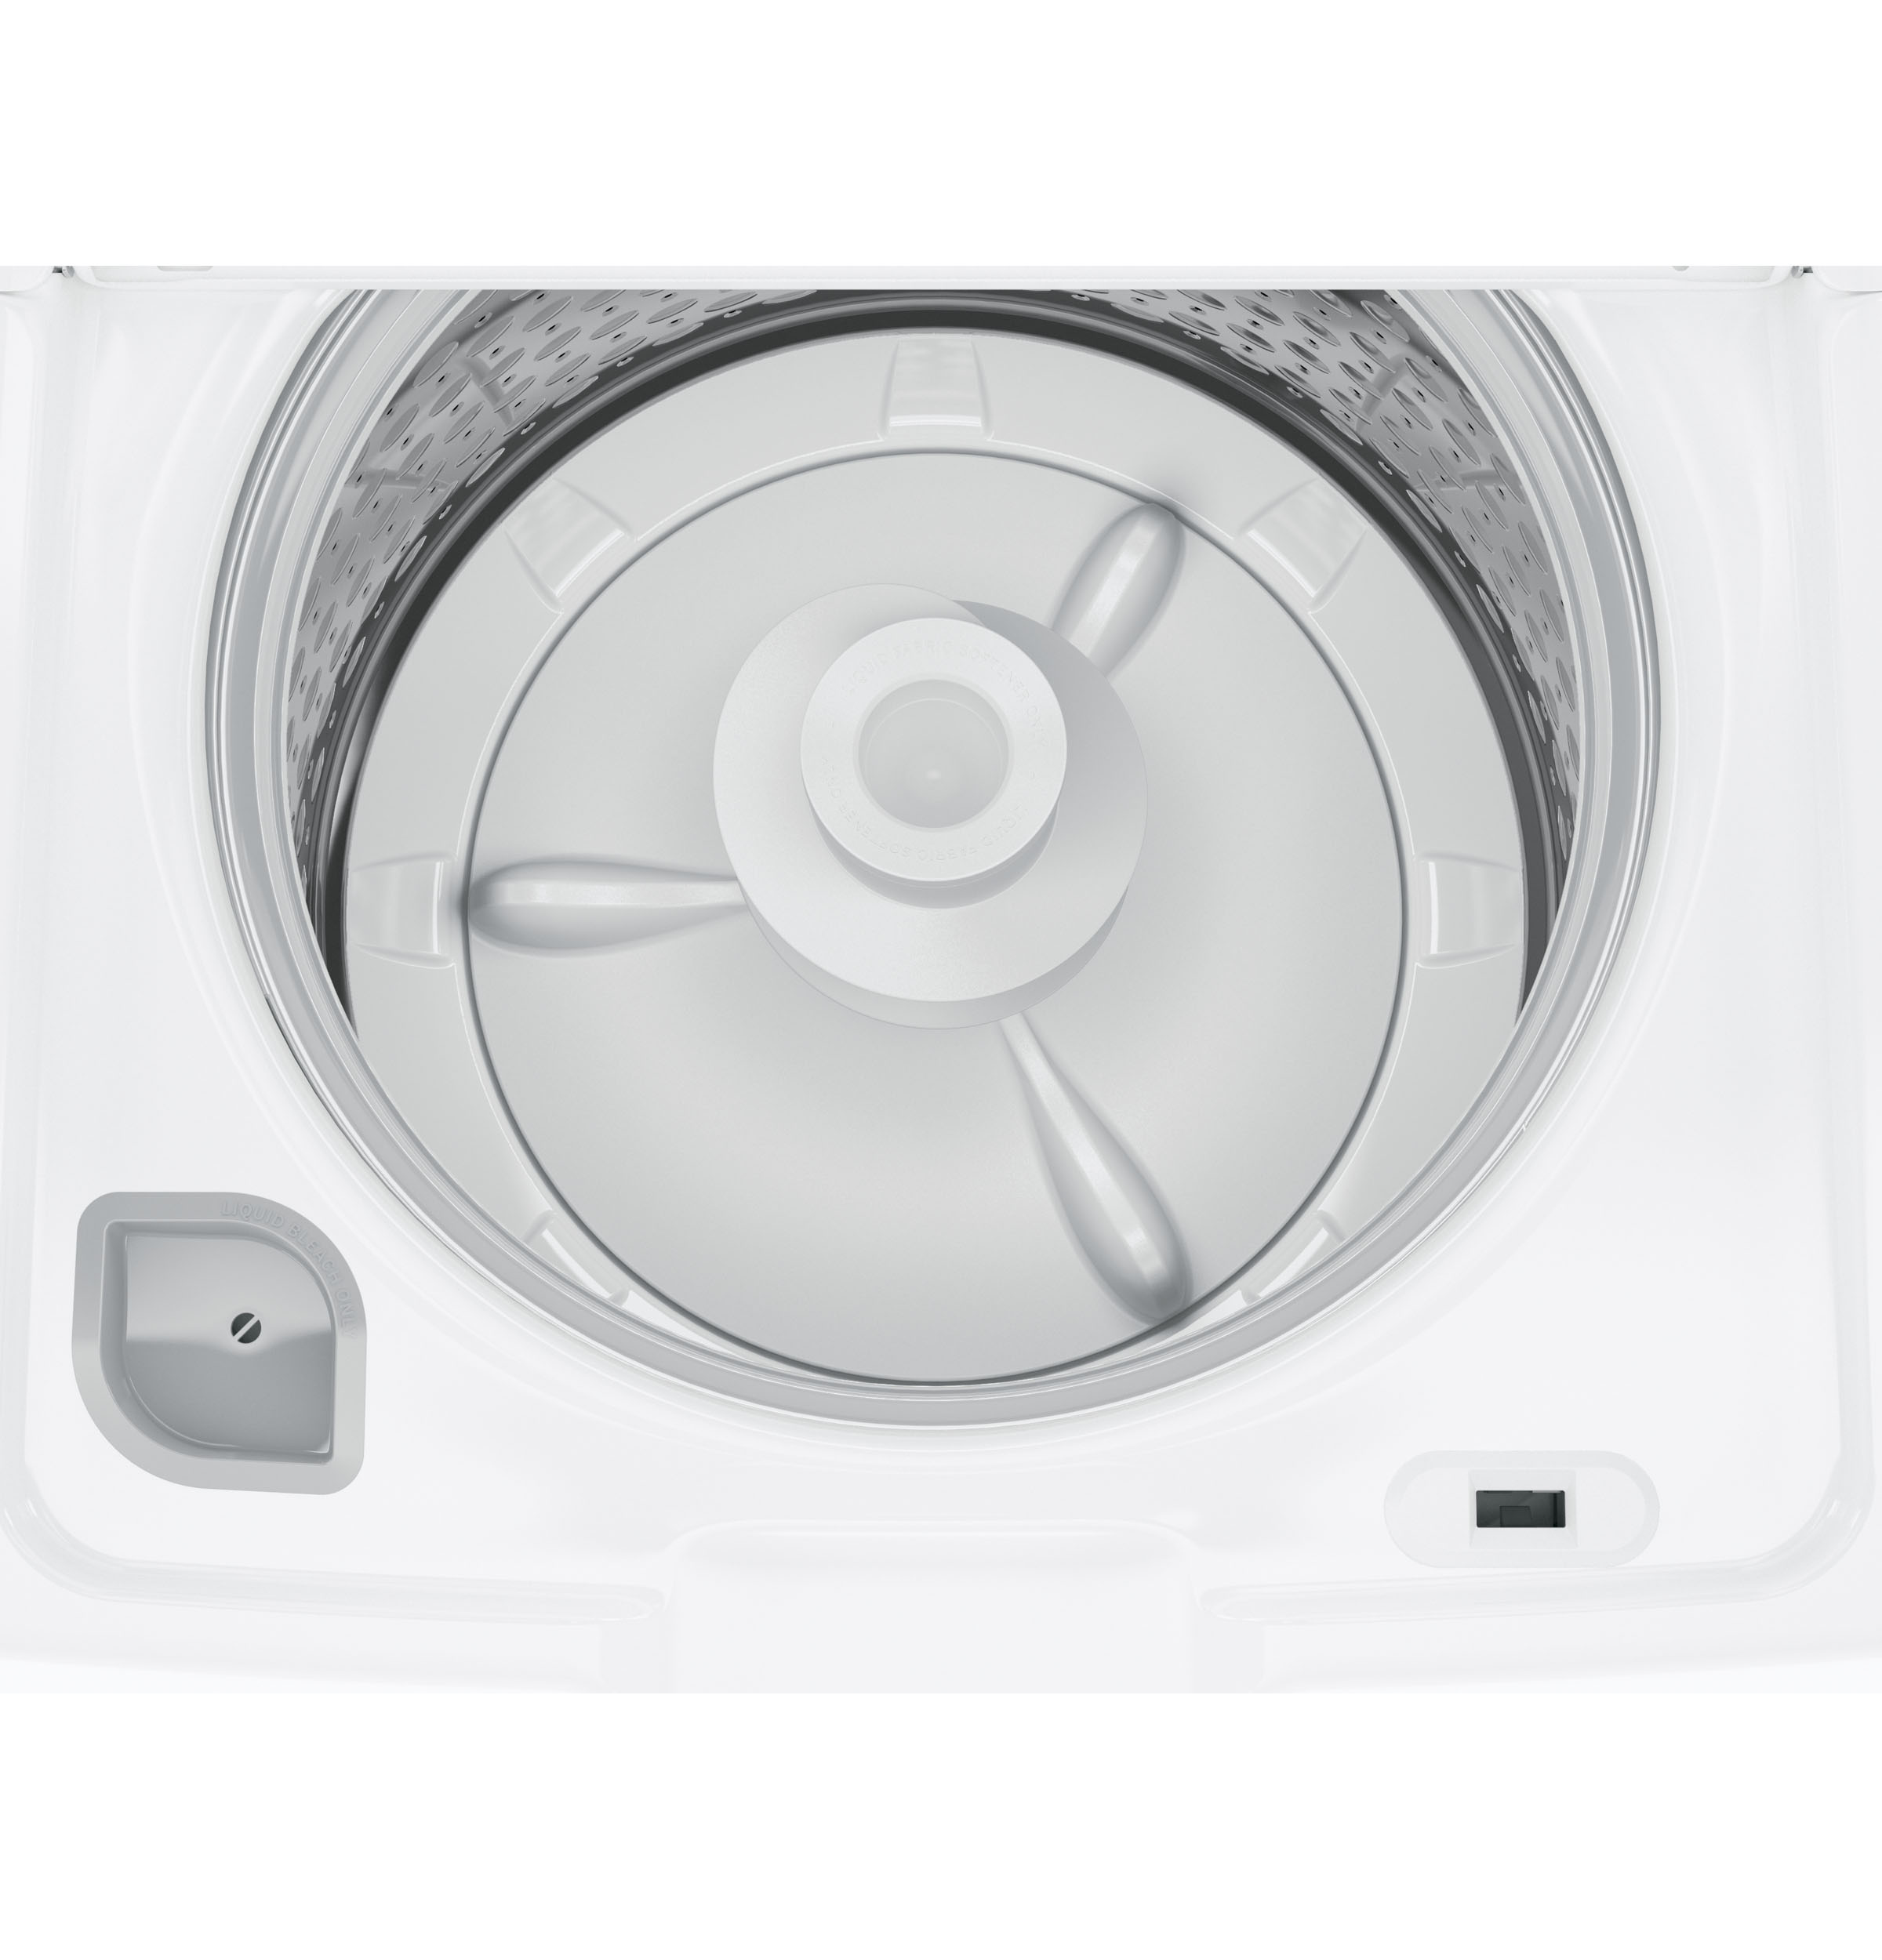 b9e78883a68 GE® 4.2 cu. ft. Capacity Washer with Stainless Steel Basket ...